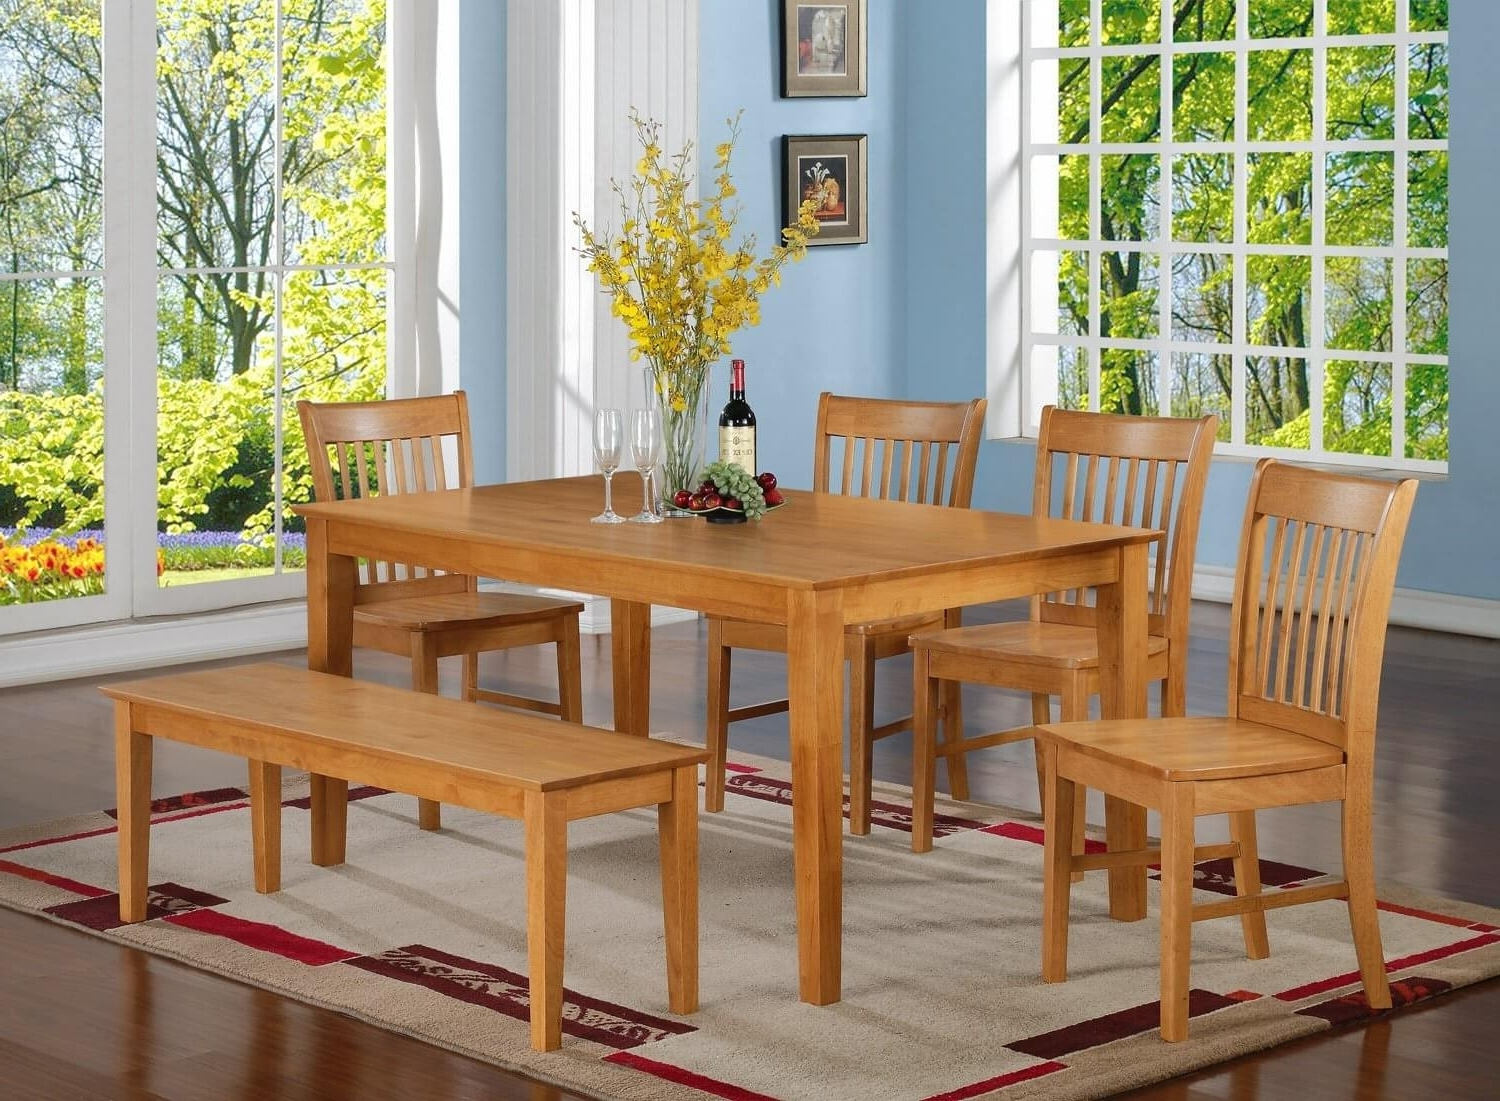 Oak Dining Tables Sets Intended For Fashionable 26 Dining Room Sets (Big And Small) With Bench Seating (2018) (View 18 of 25)